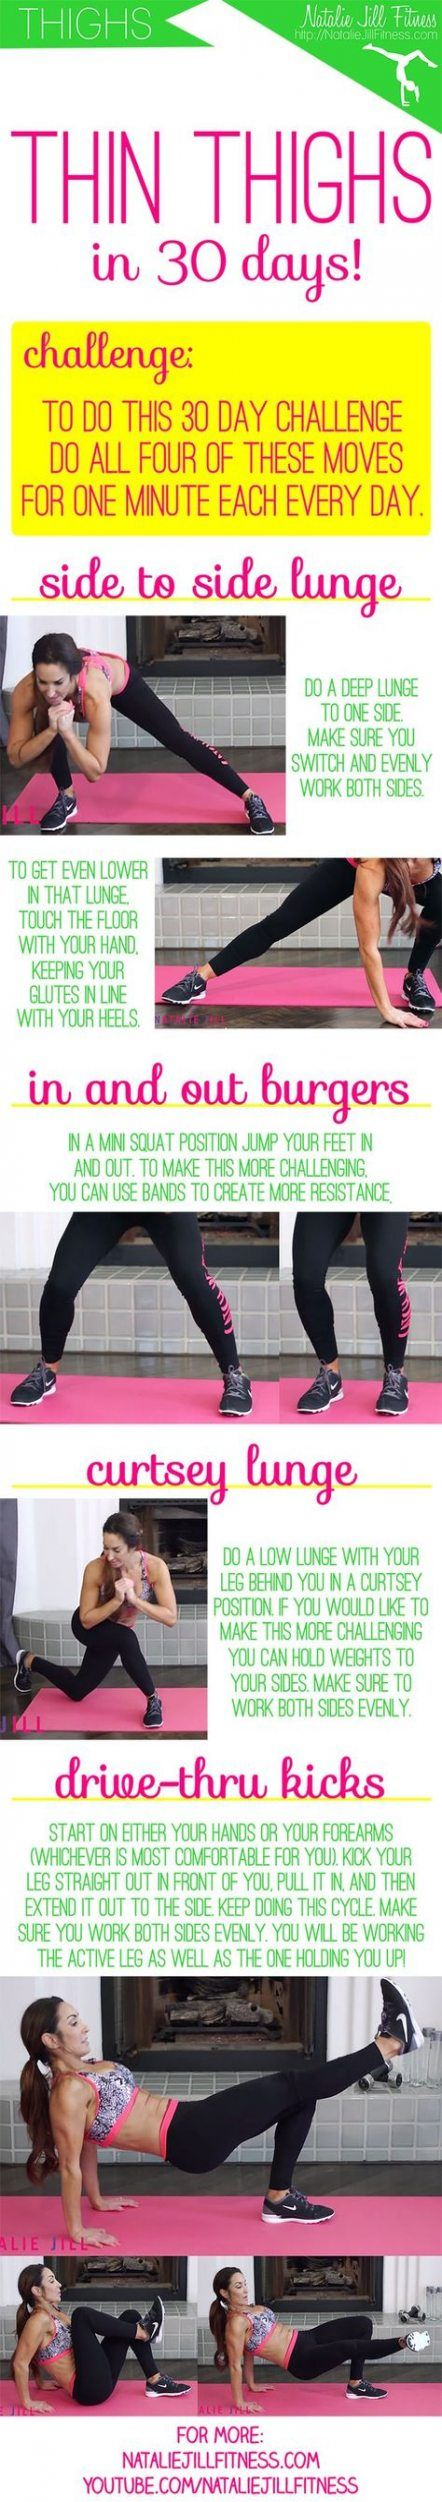 Fitness Nutrition Motivation Weightloss 22+ Ideas #motivation #fitness